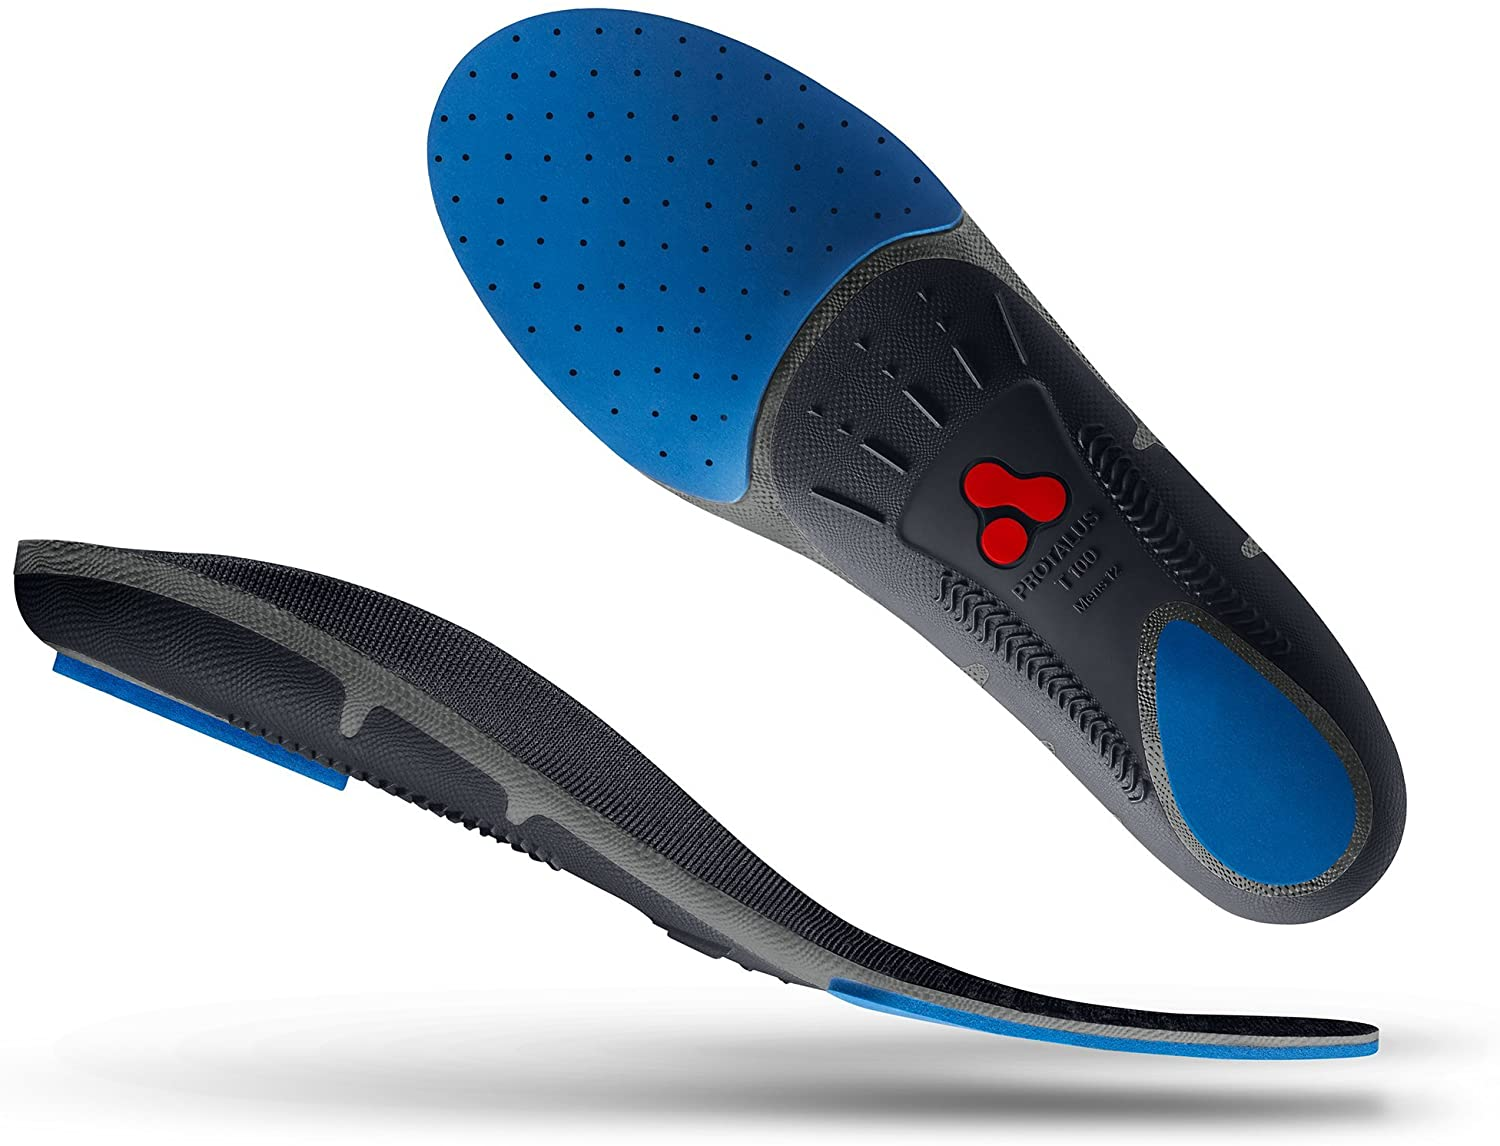 Protalus T100 Thin Series– Patented Stress Relief Replacement Premium Shoe Inserts, Increase Comfort, Anti Fatigue, Alignment Improving Shoe Insoles - for Men Size 9